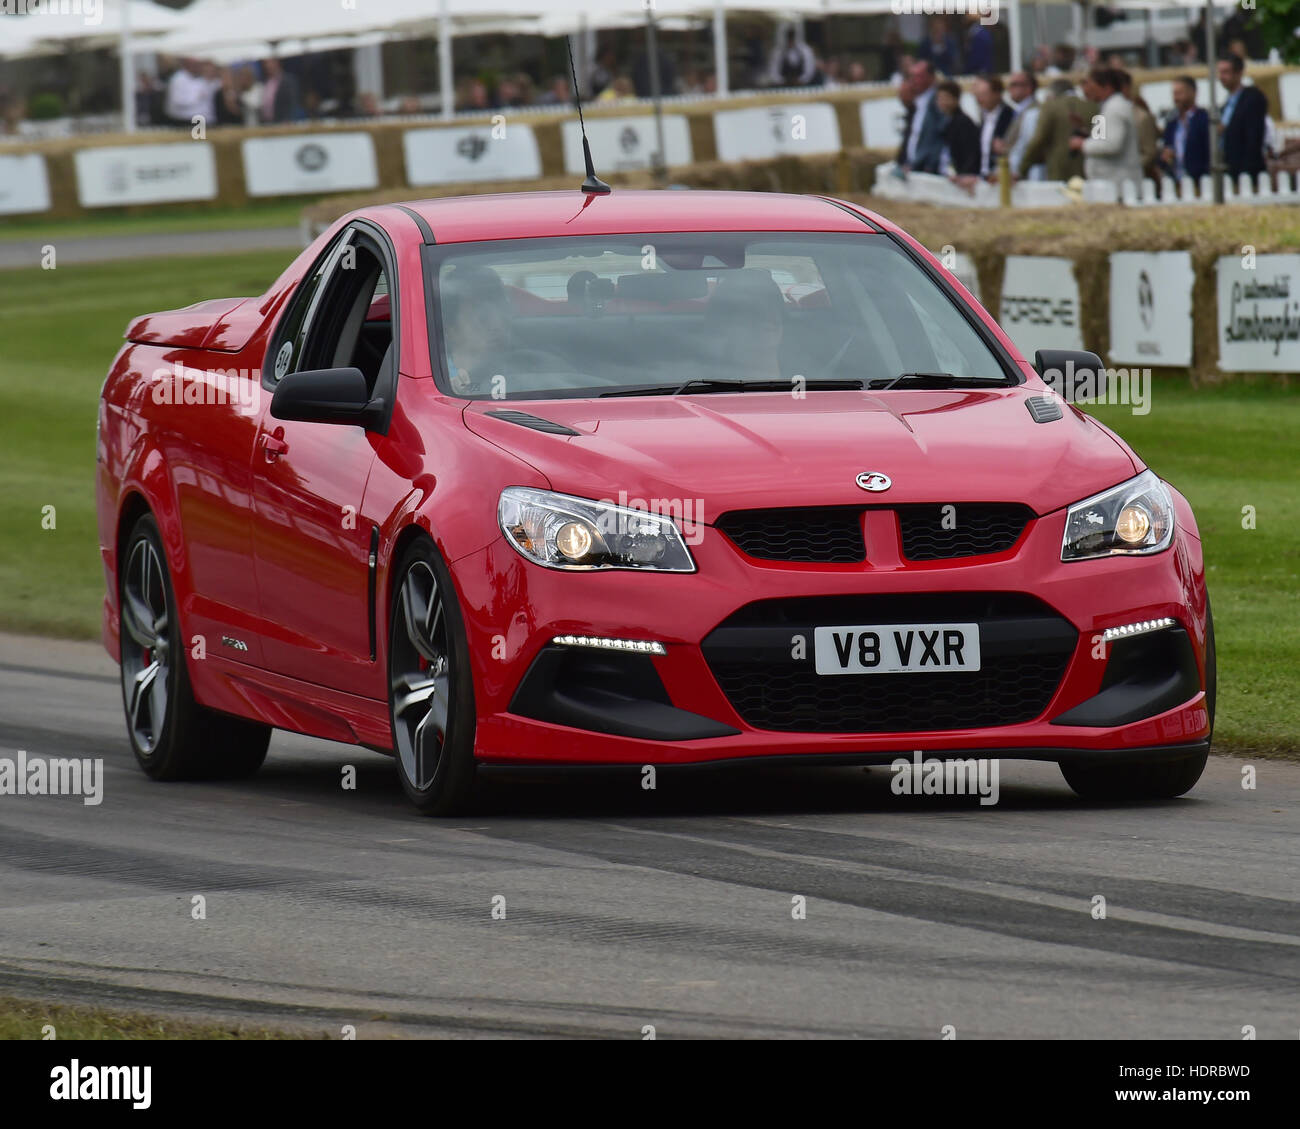 Vauxhall Maloo, Goodwood Festival of Speed, 2016. automobiles, cars, entertainment, Festival of Speed, FoS, Full - Stock Image